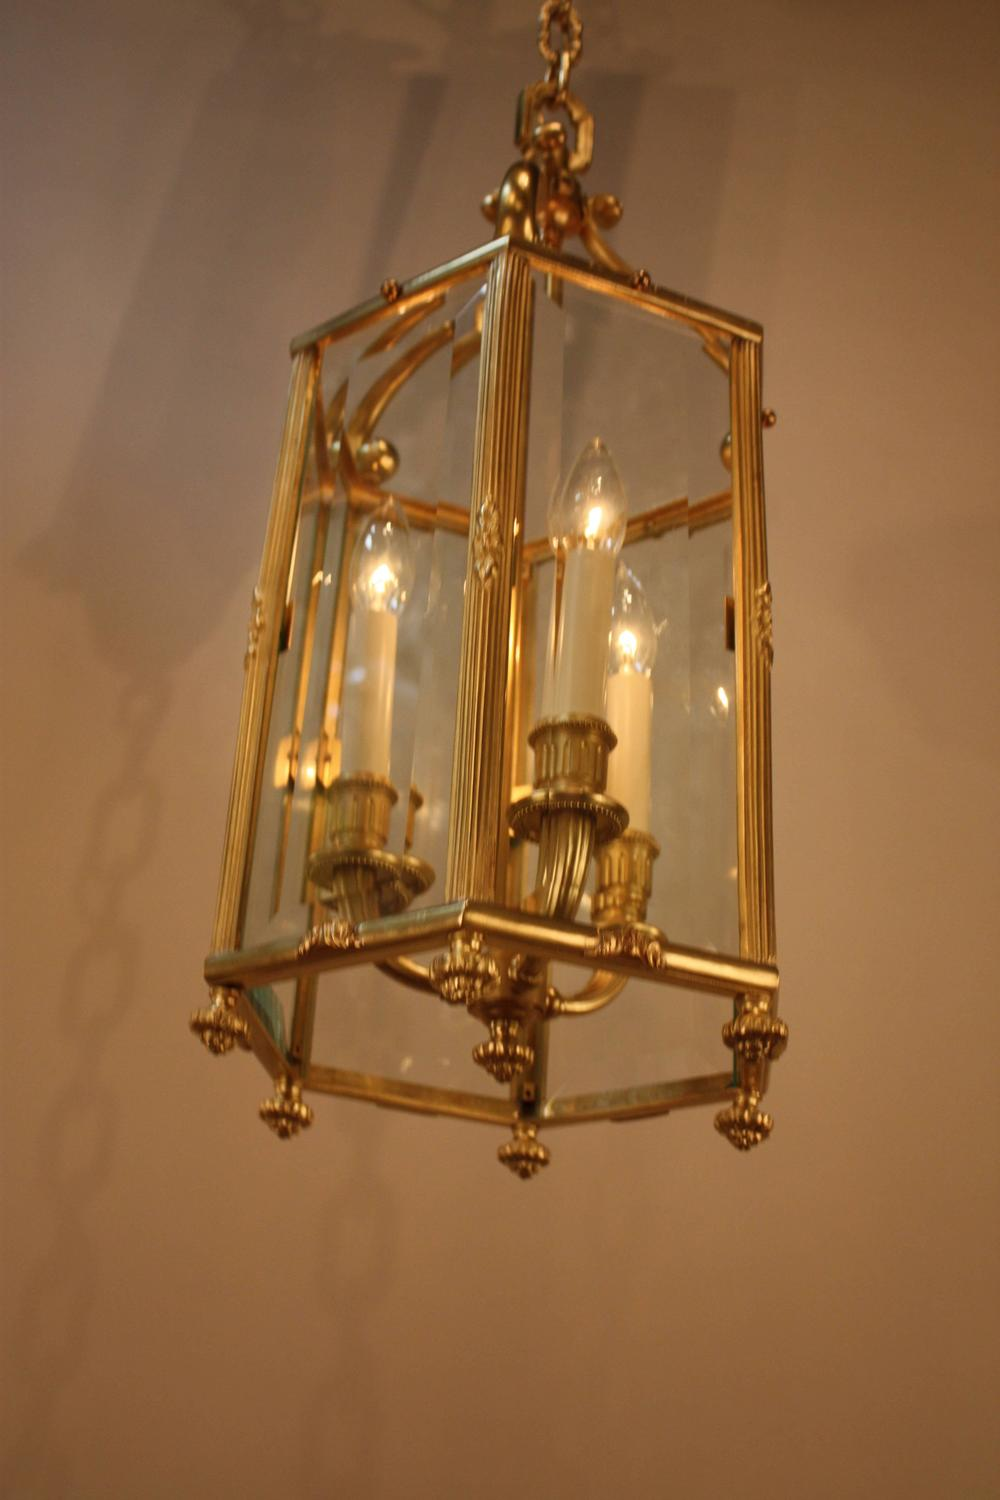 French Bronze Lantern By Atelier Petitot For Sale At 1stdibs